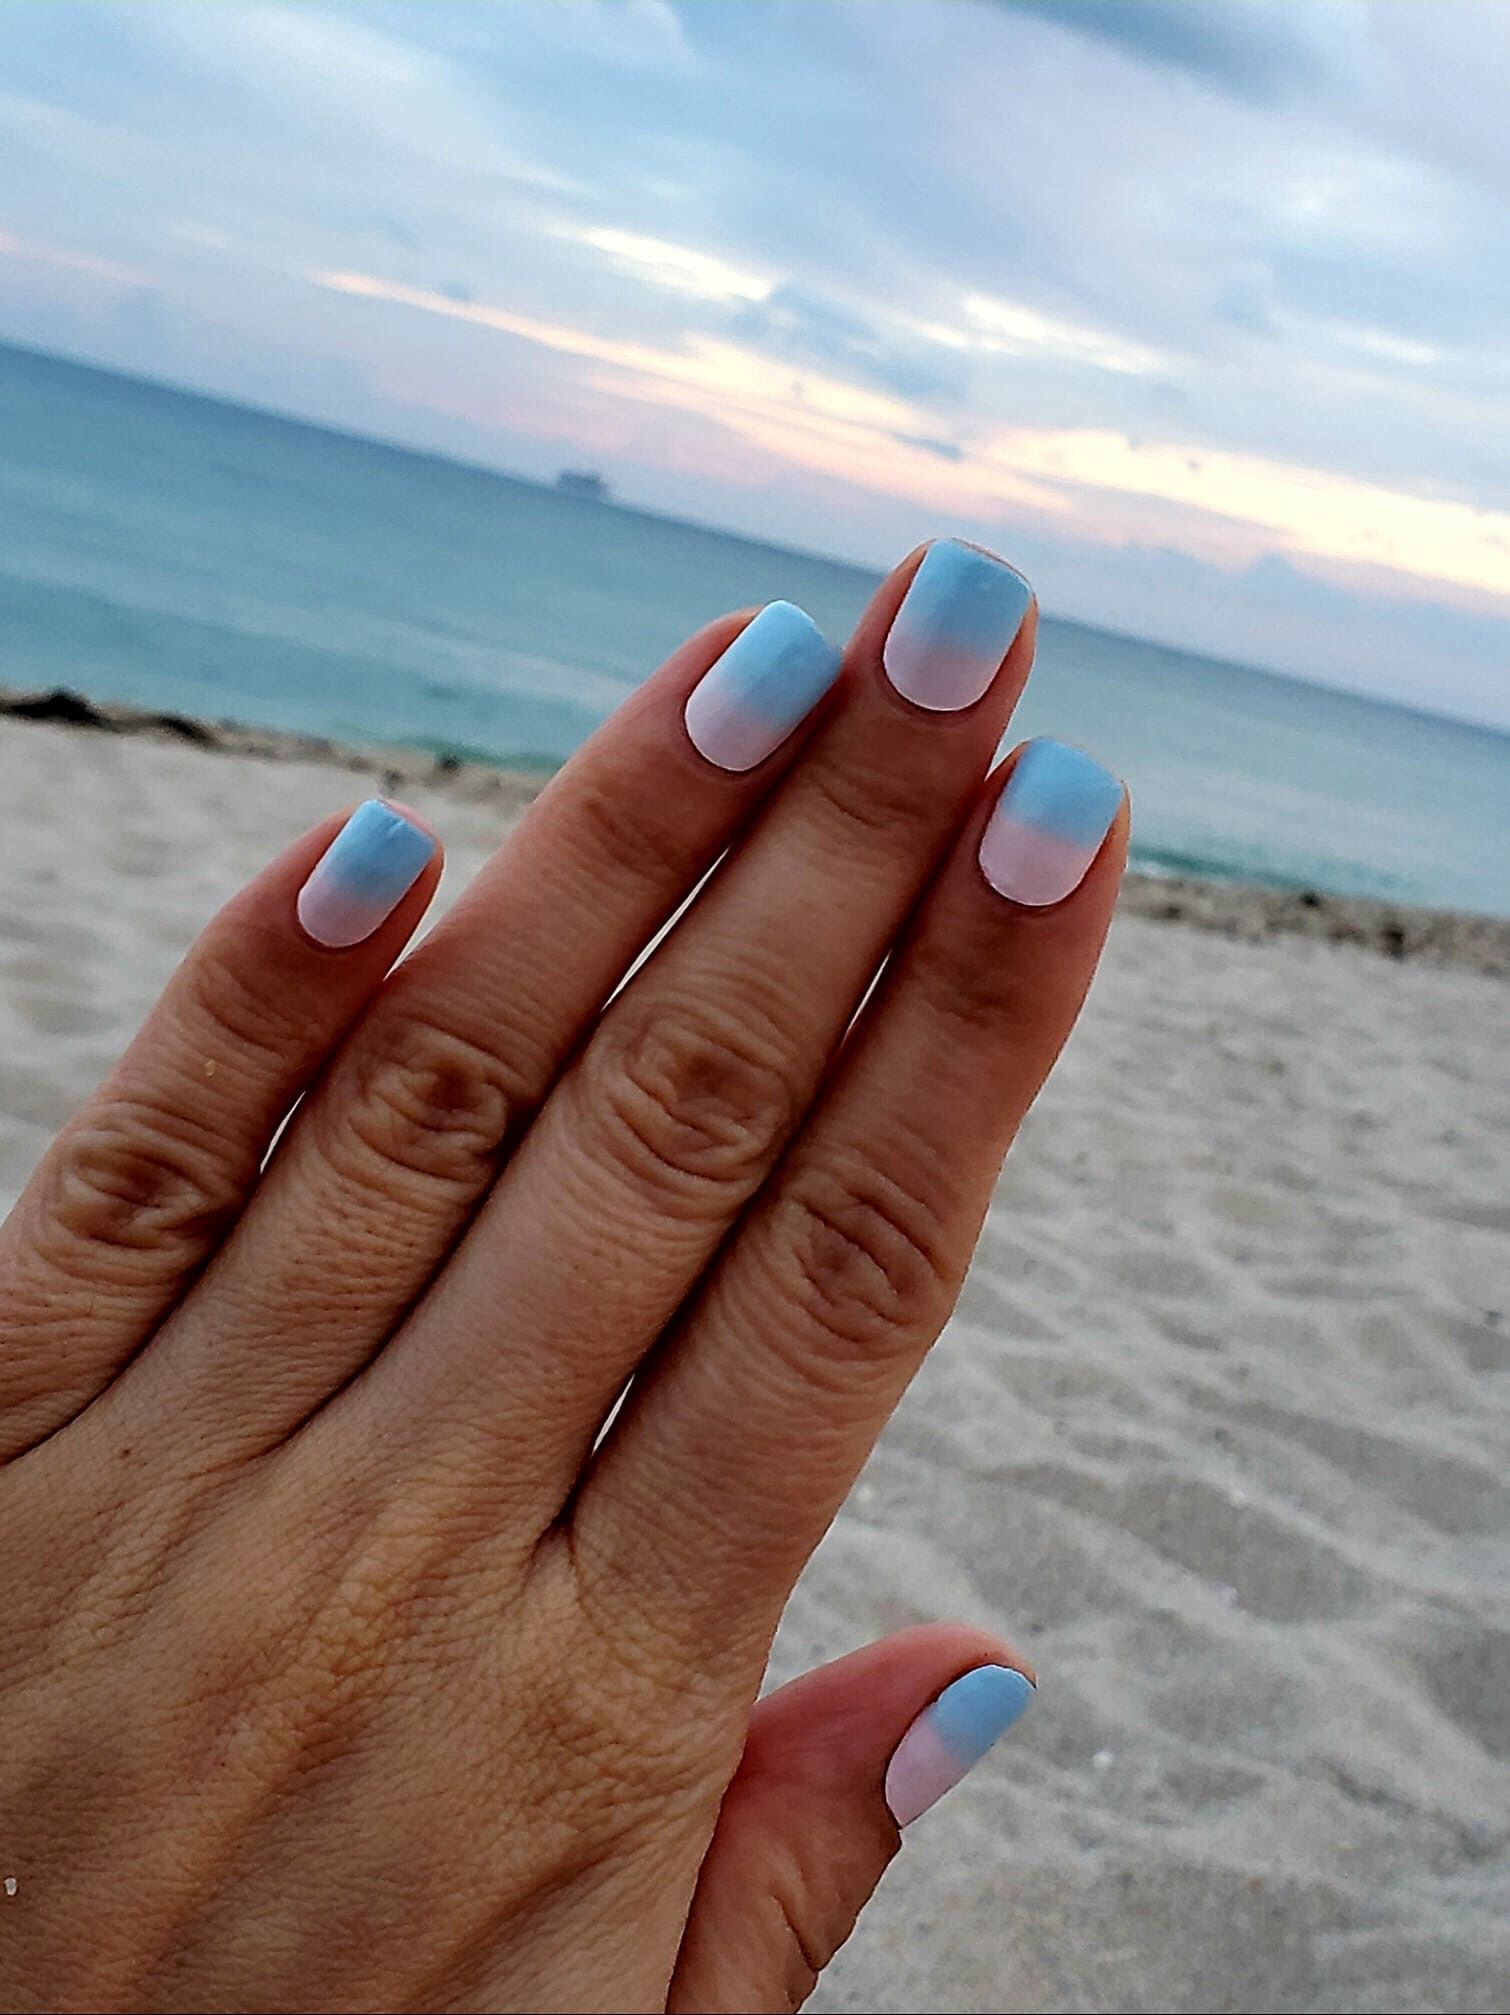 Seaside Dreams Is Purrfect For The Beach Any Time Of The Year